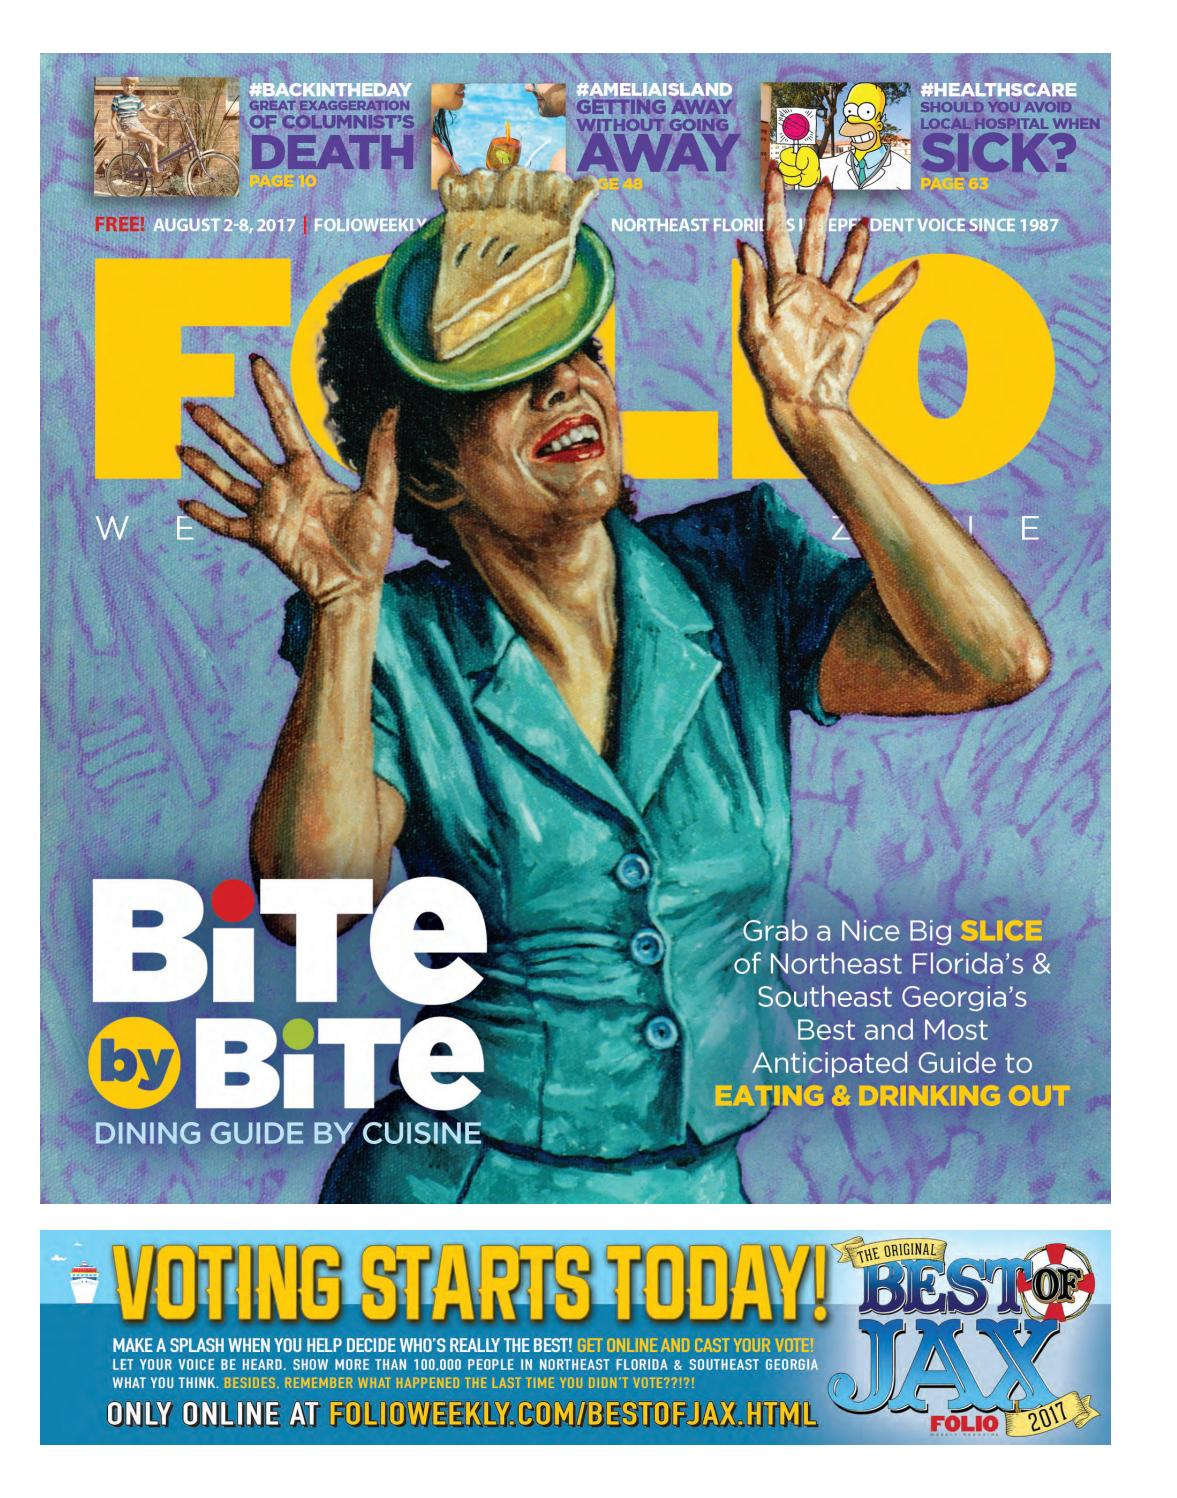 08/02/17 BITE by BITE by Cuisine 2017 by Folio Weekly - issuu